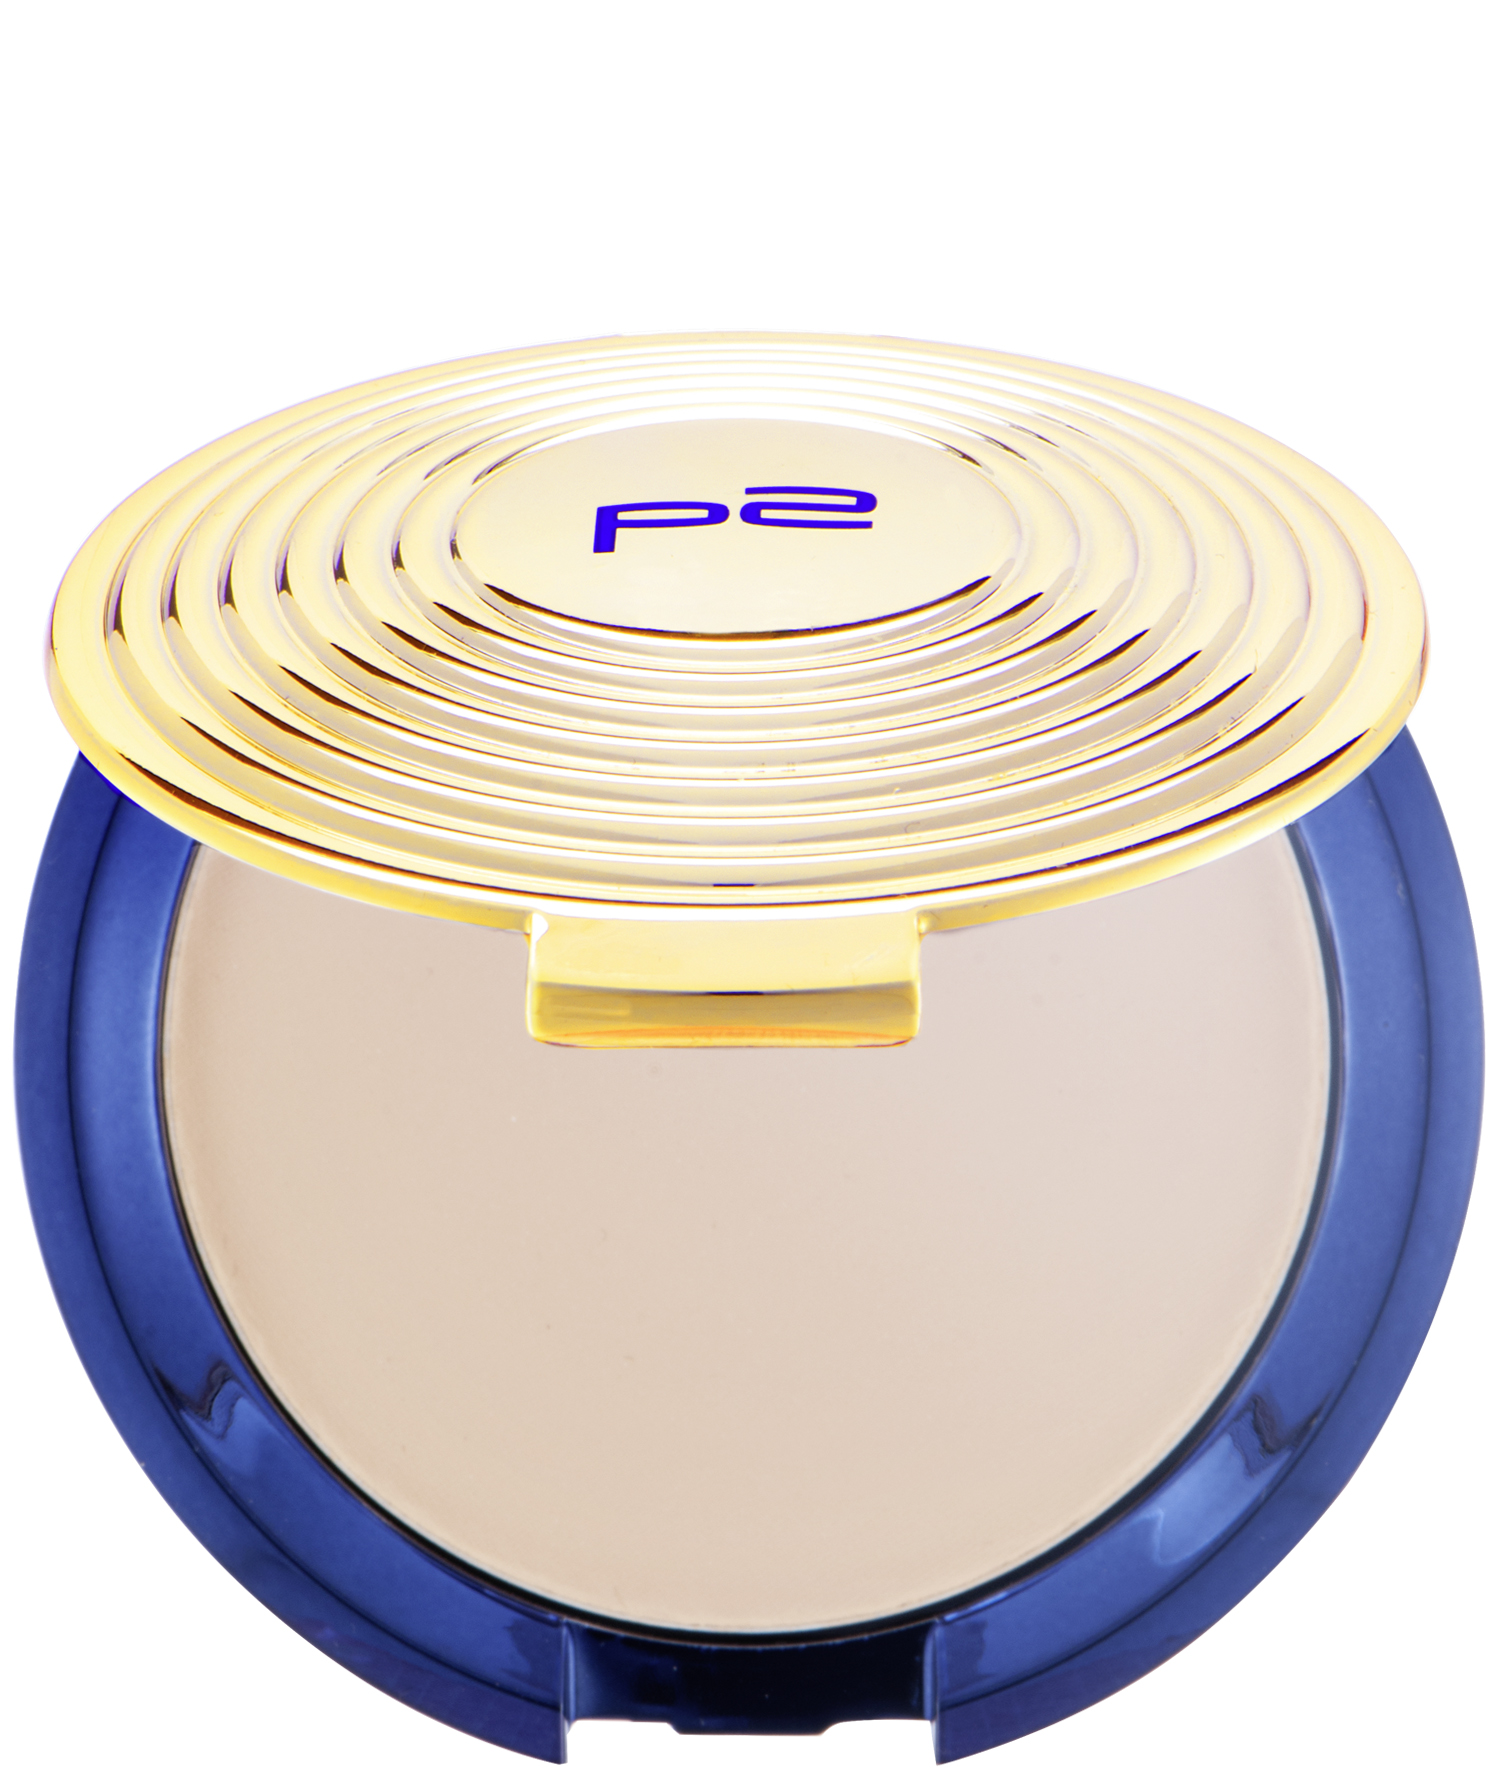 en vogue compact powder_010